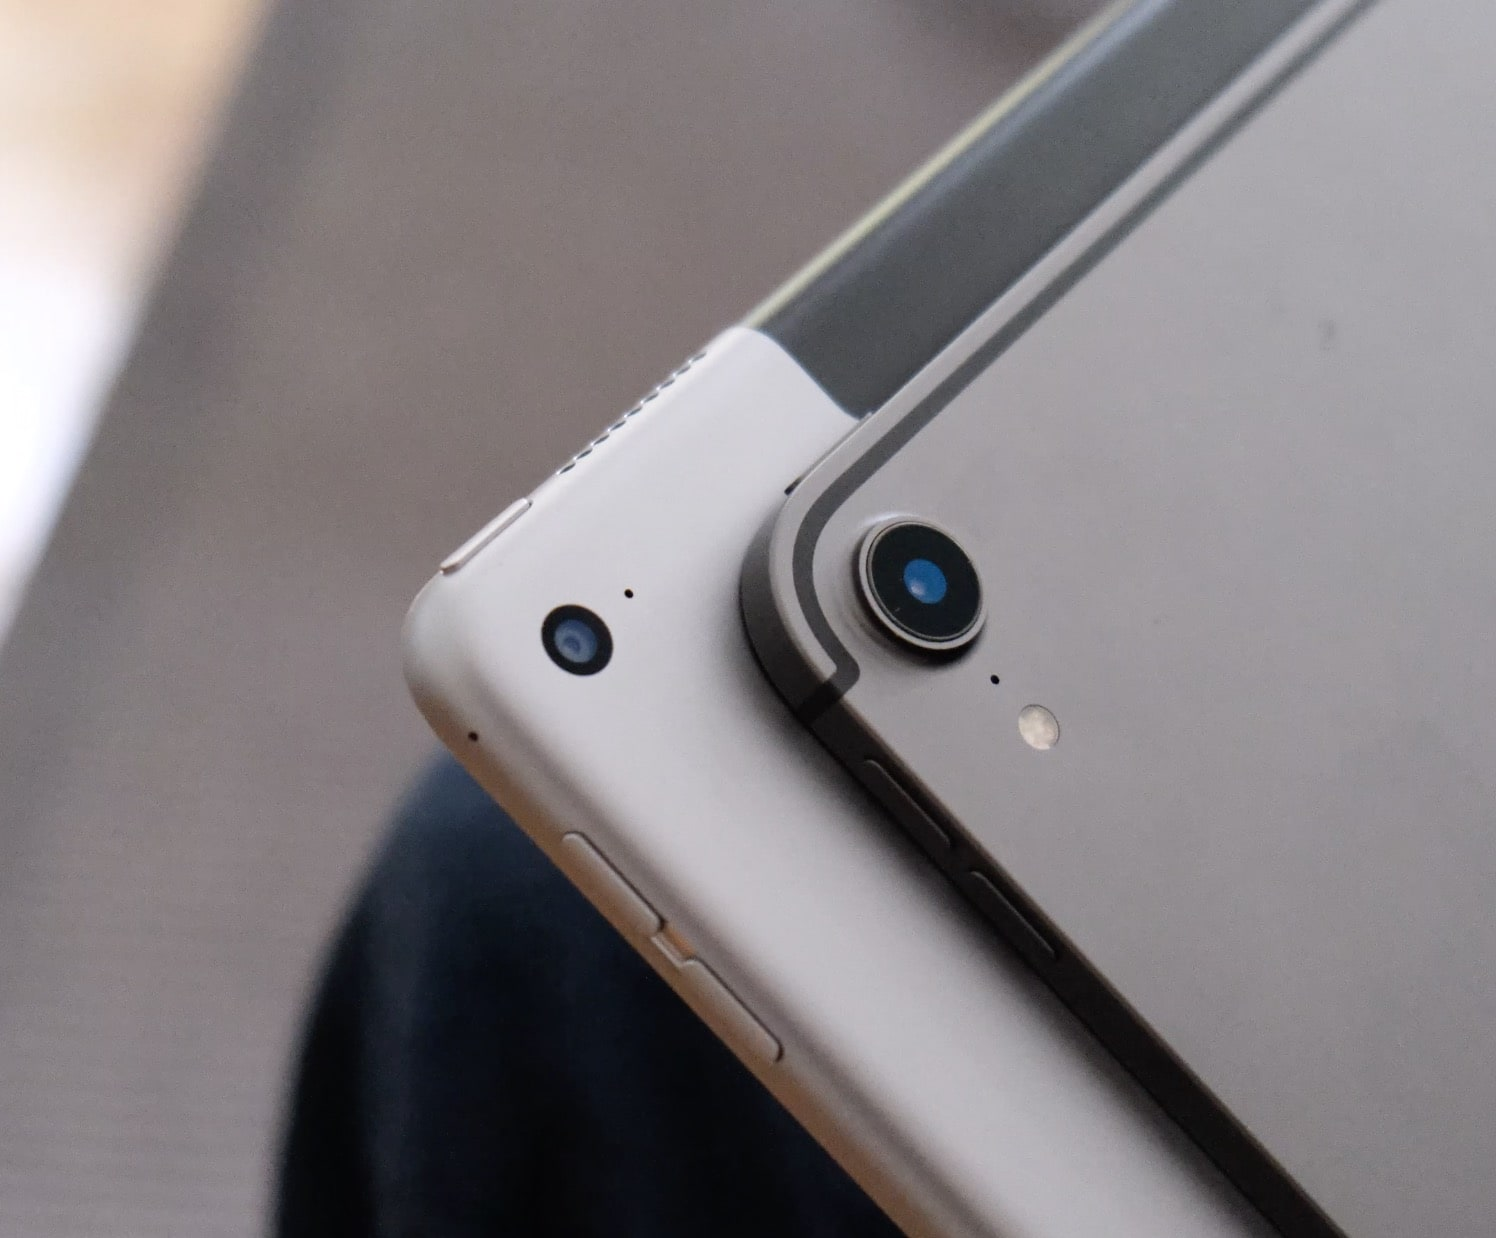 The new camera dumps all over the one in the first-gen iPad Pro.